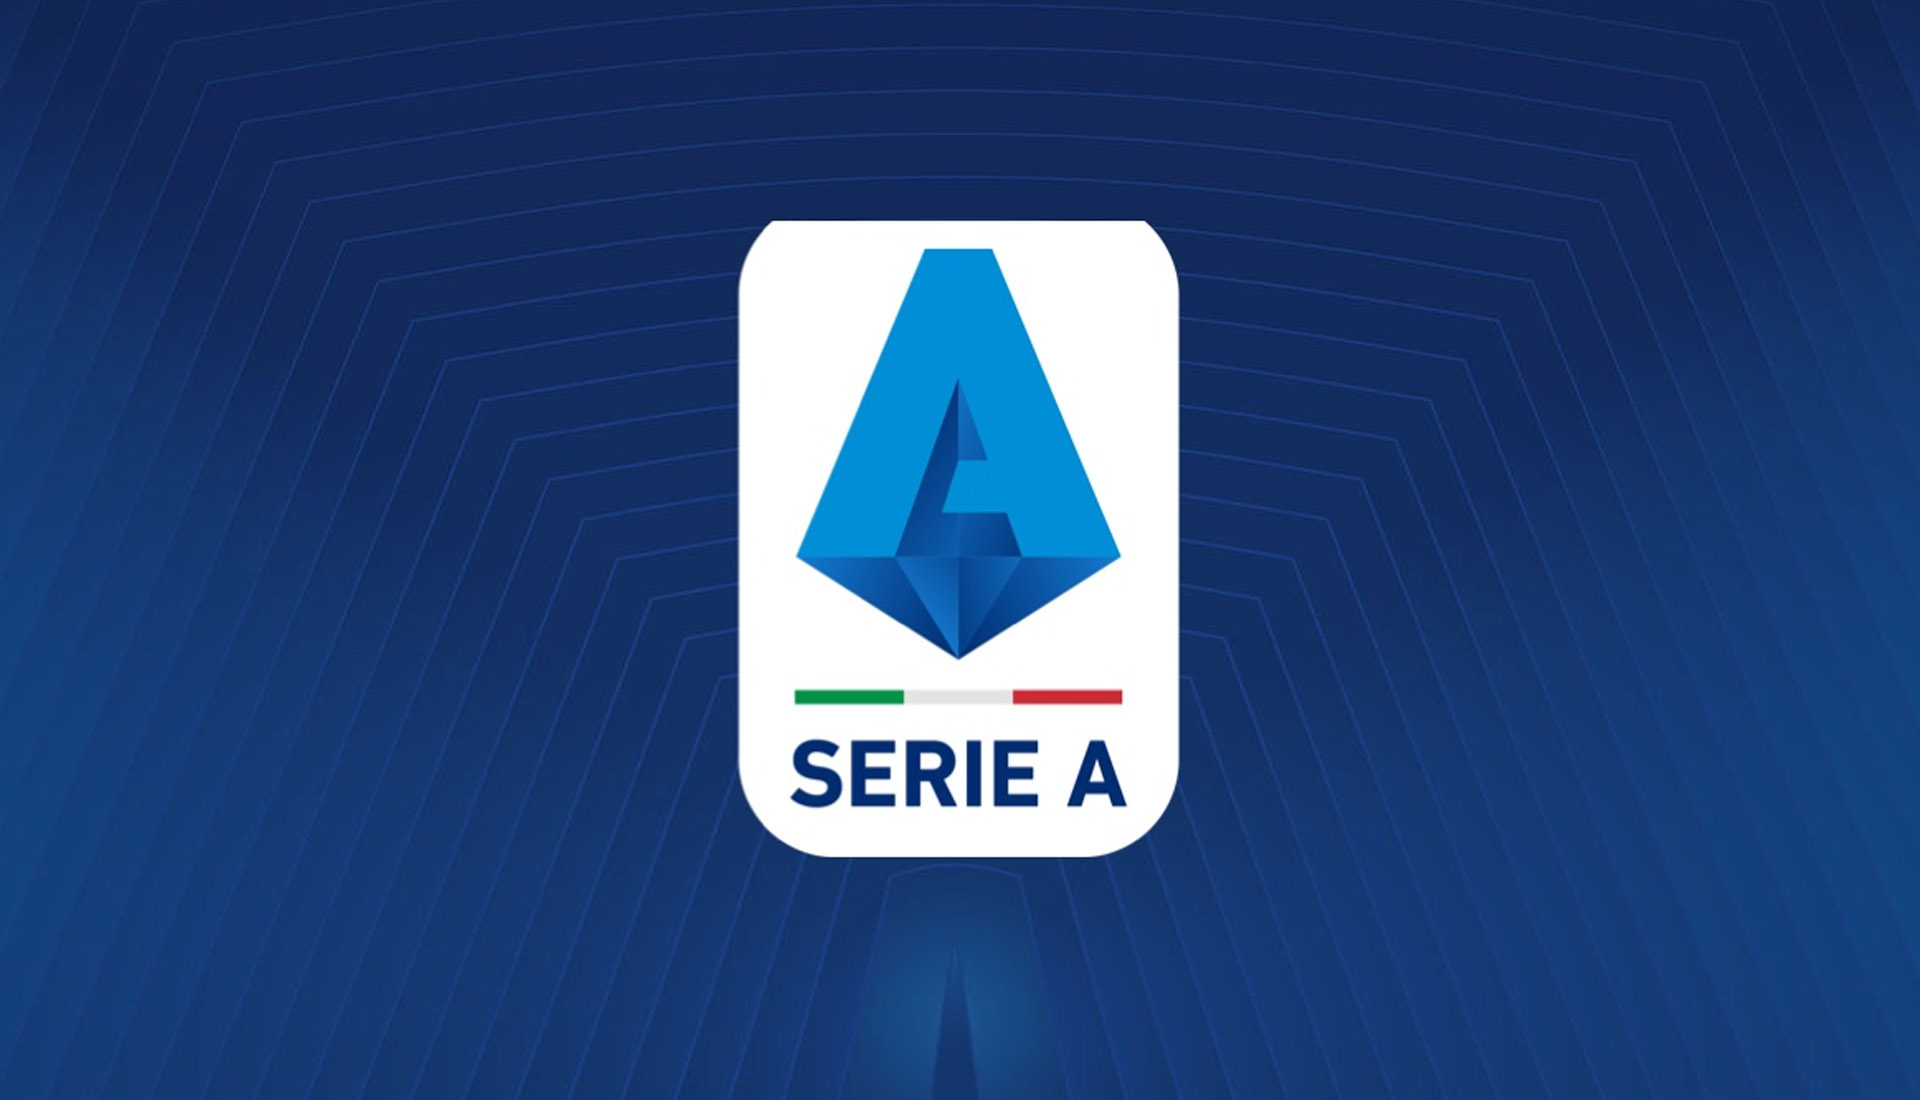 Inter Milan, Naples, AS Rome : Réunion de crise en Serie A